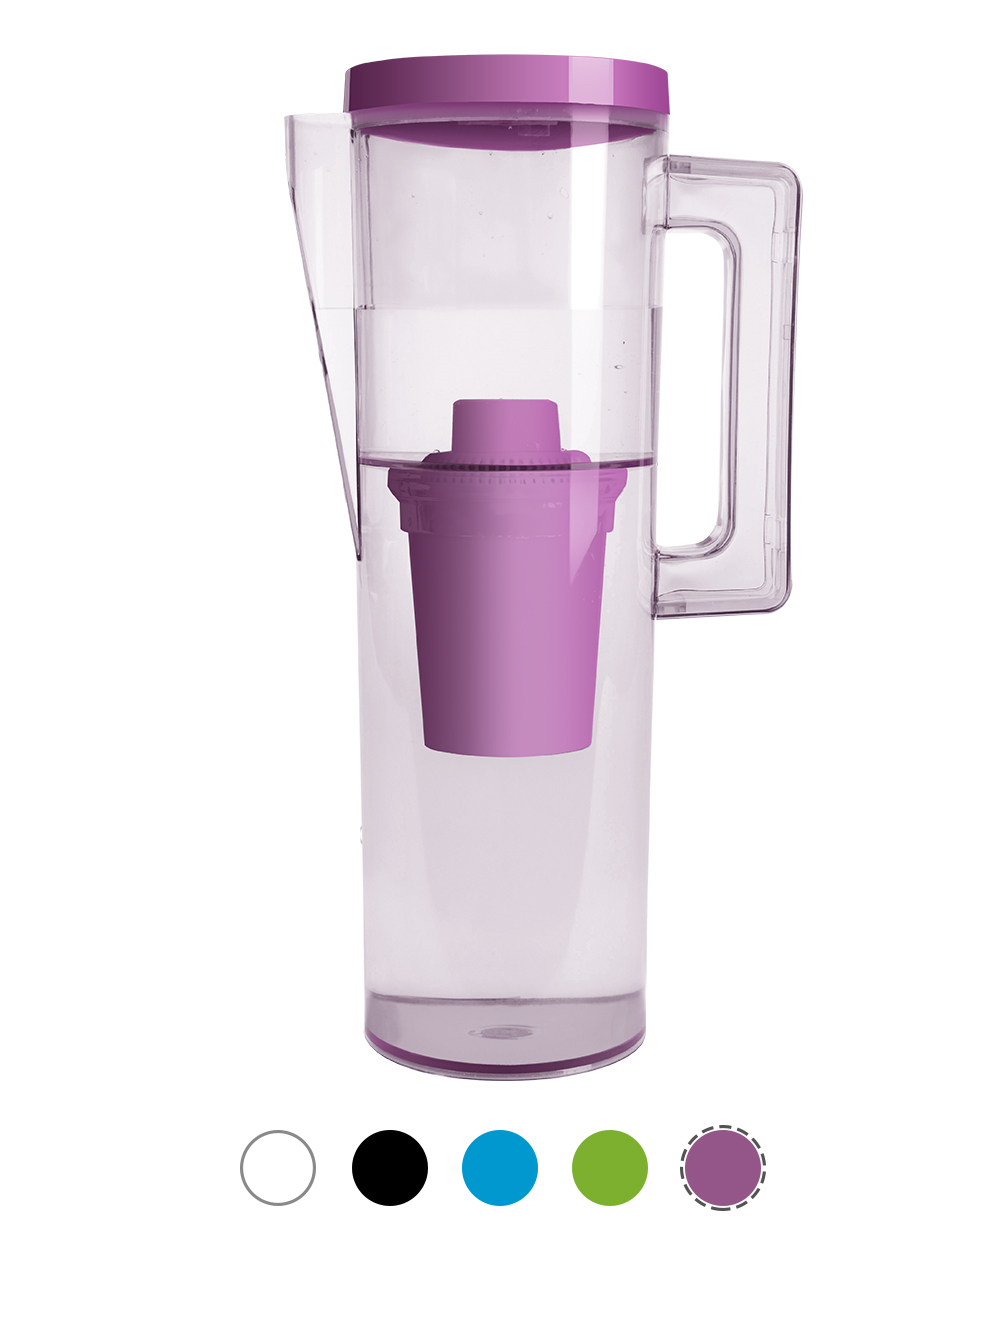 aok-106-water-filter-jug-2.jpg